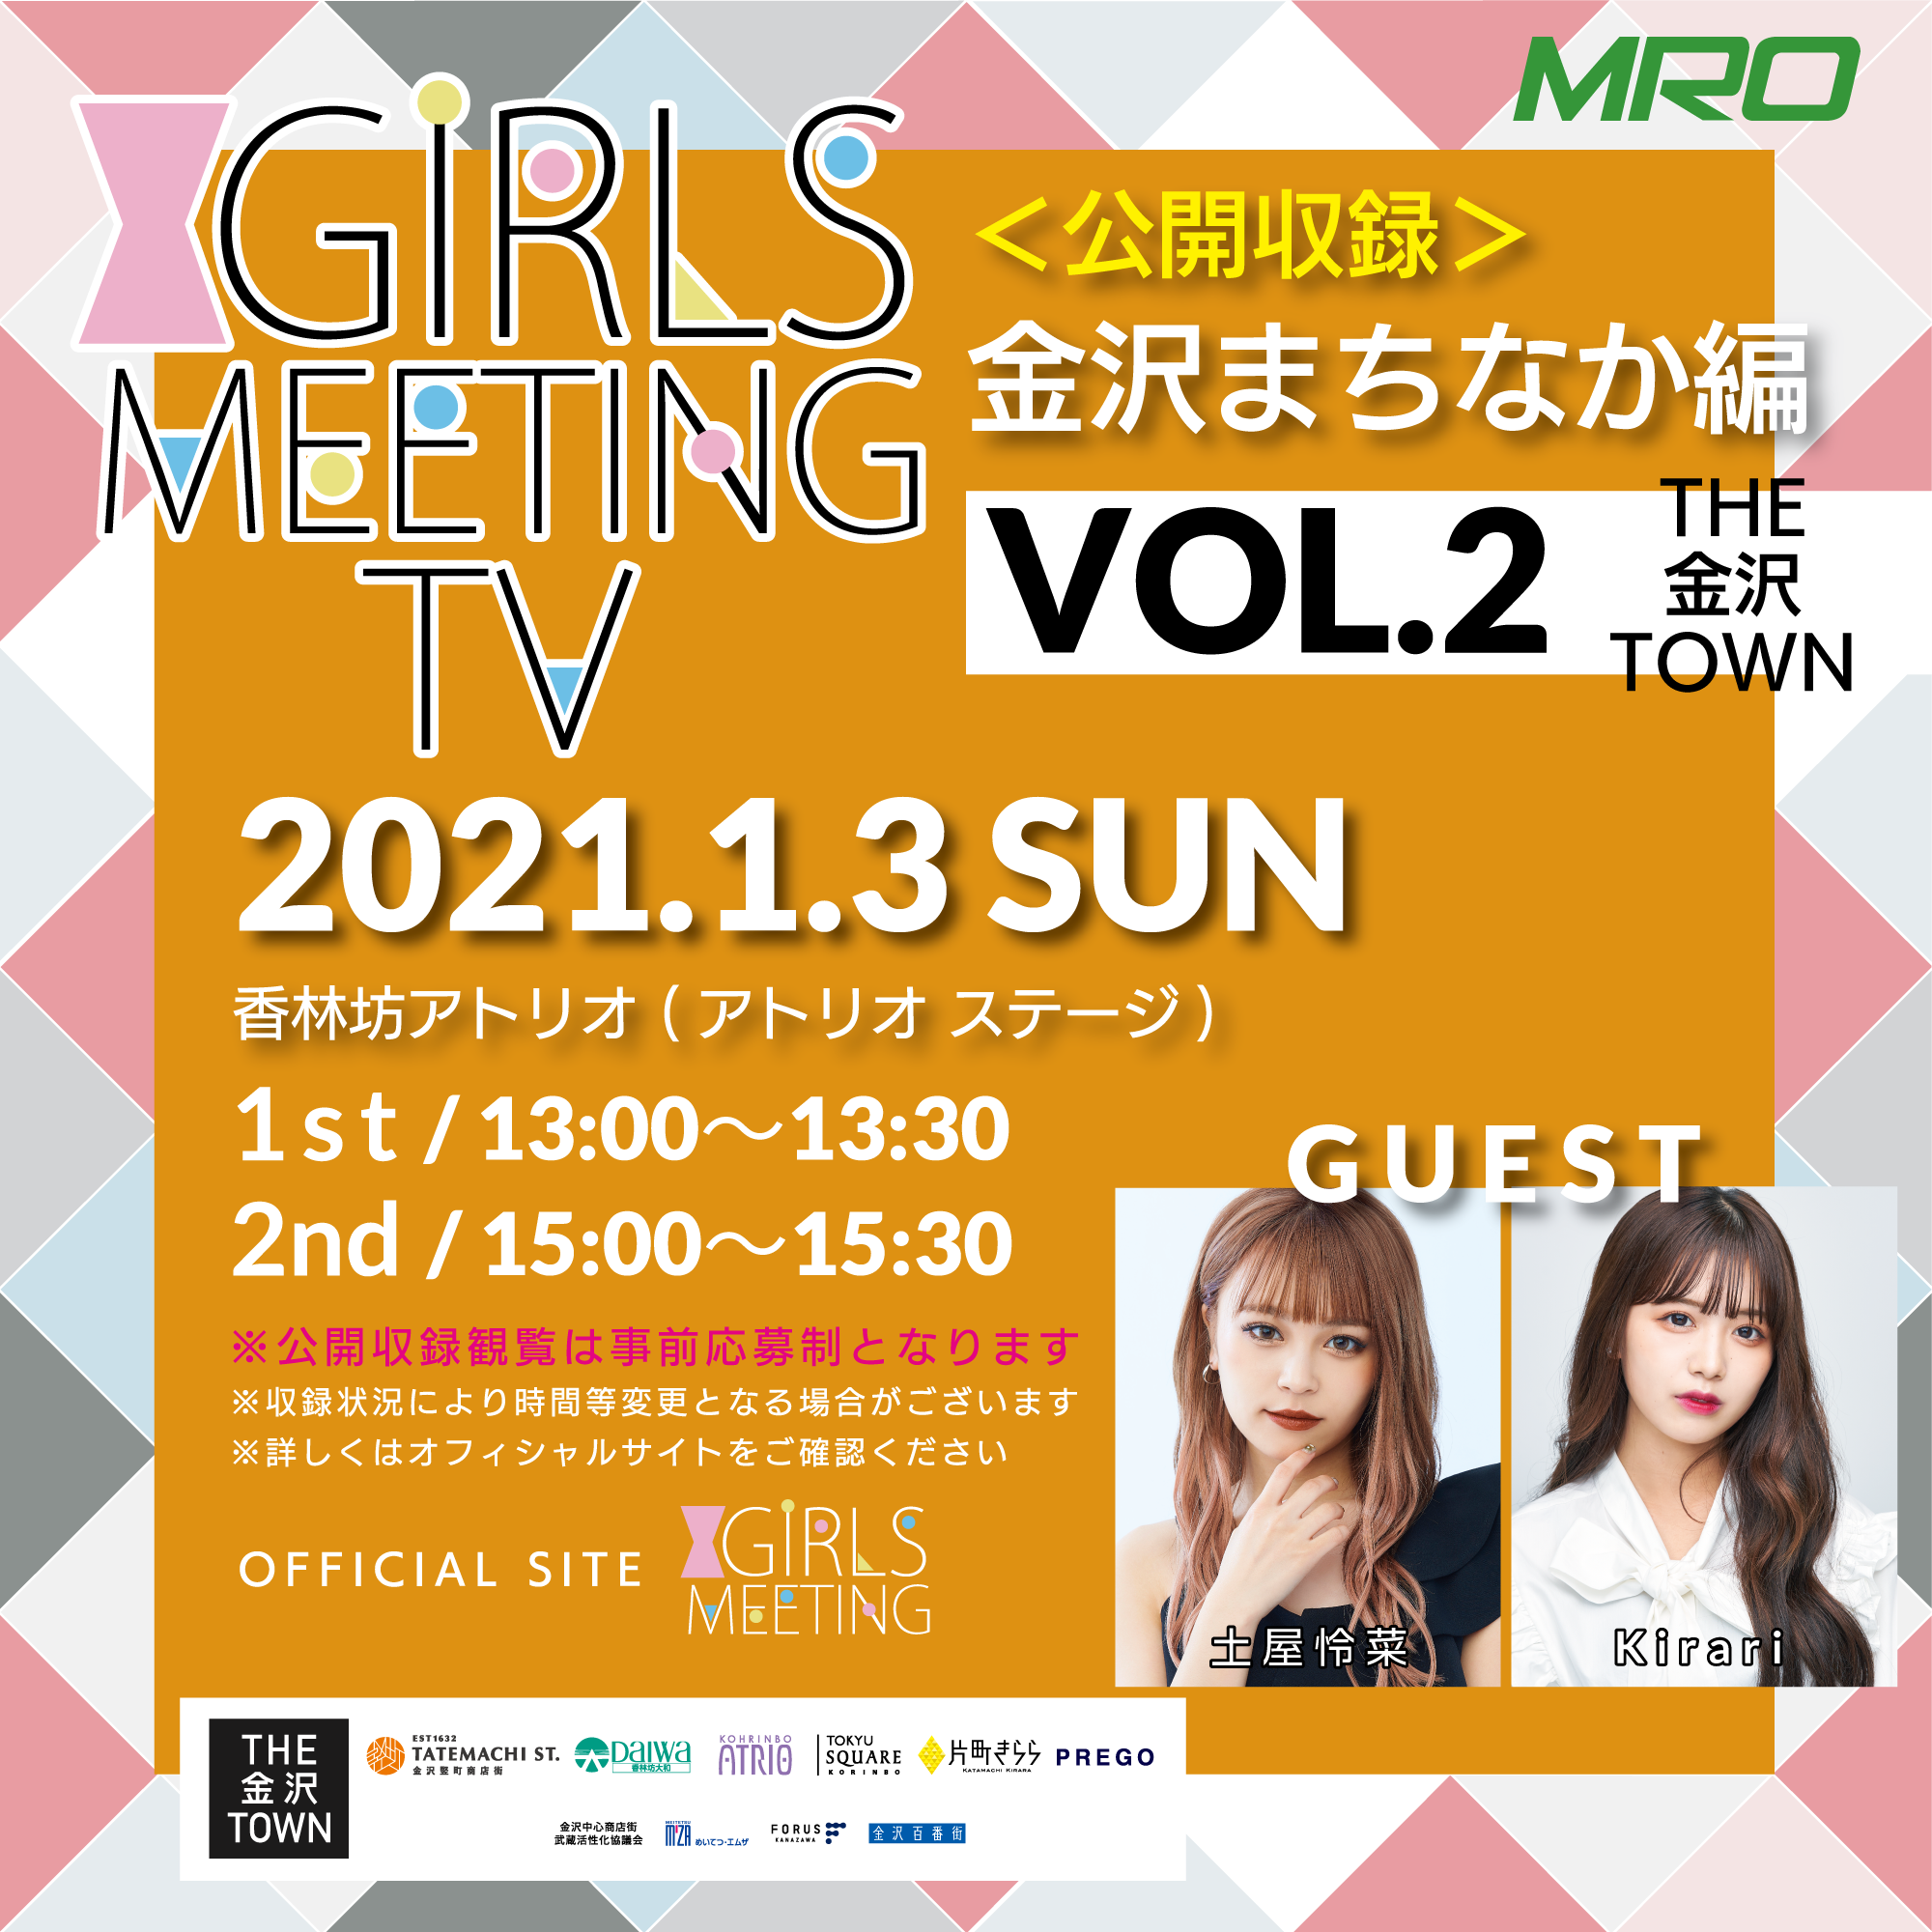 GIRLS MEETING-TV in 金沢まちなかVOL.2〜THE金沢TOWN〜